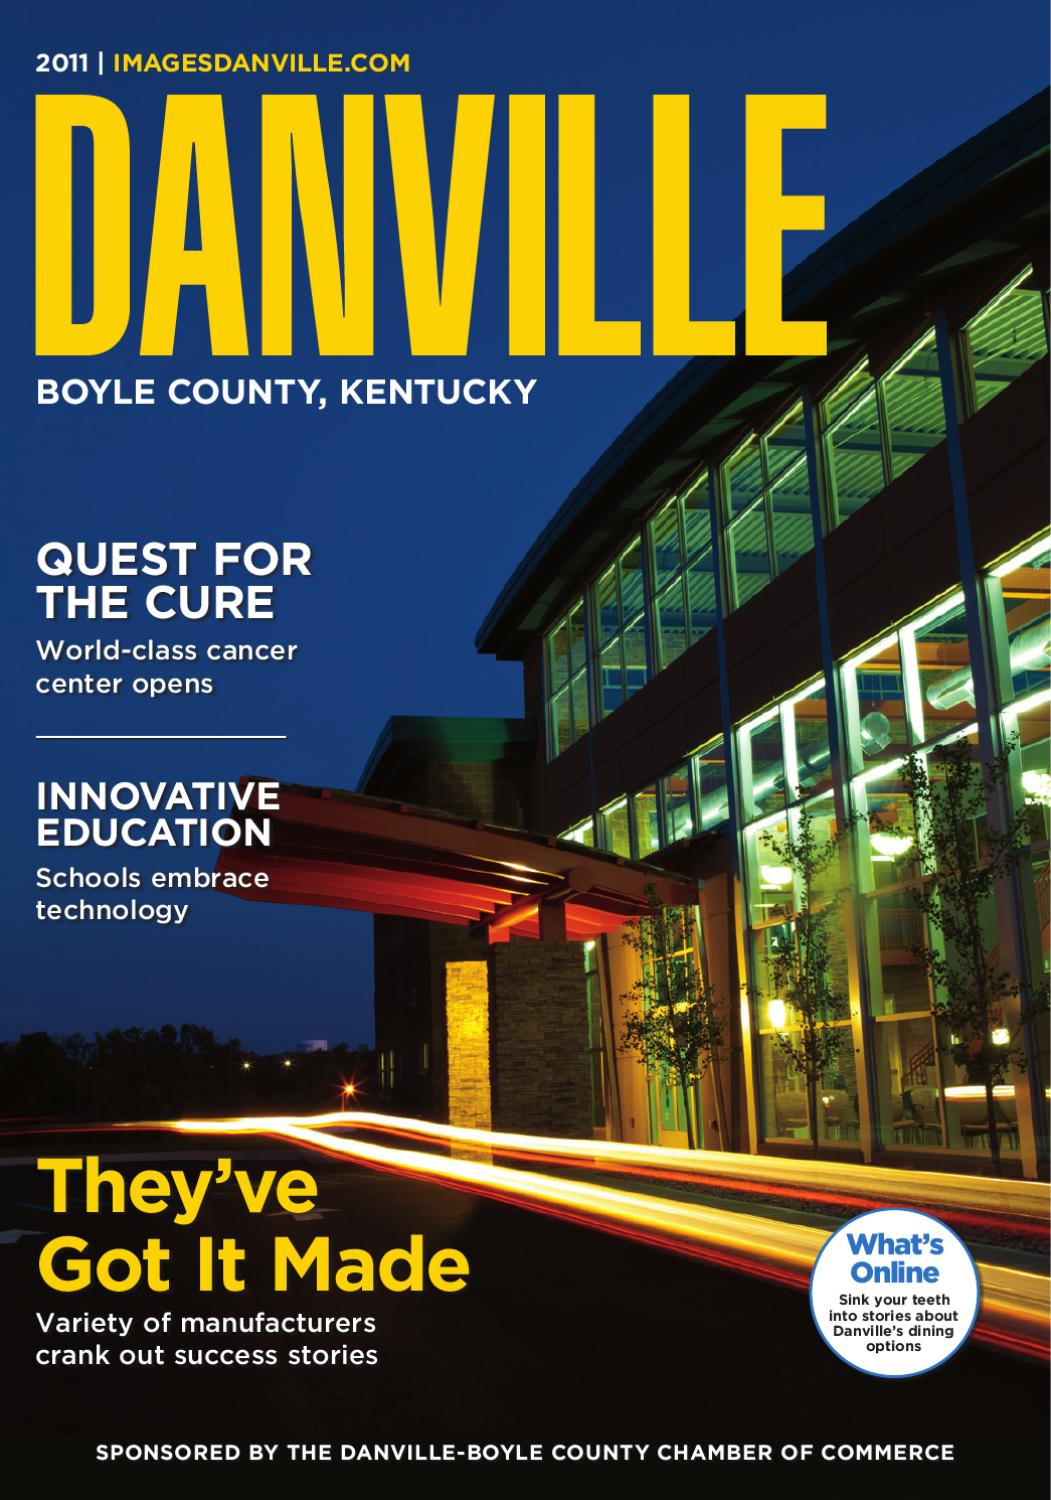 Images Danville Boyle County Ky 2011 By Journal Communications Issuu